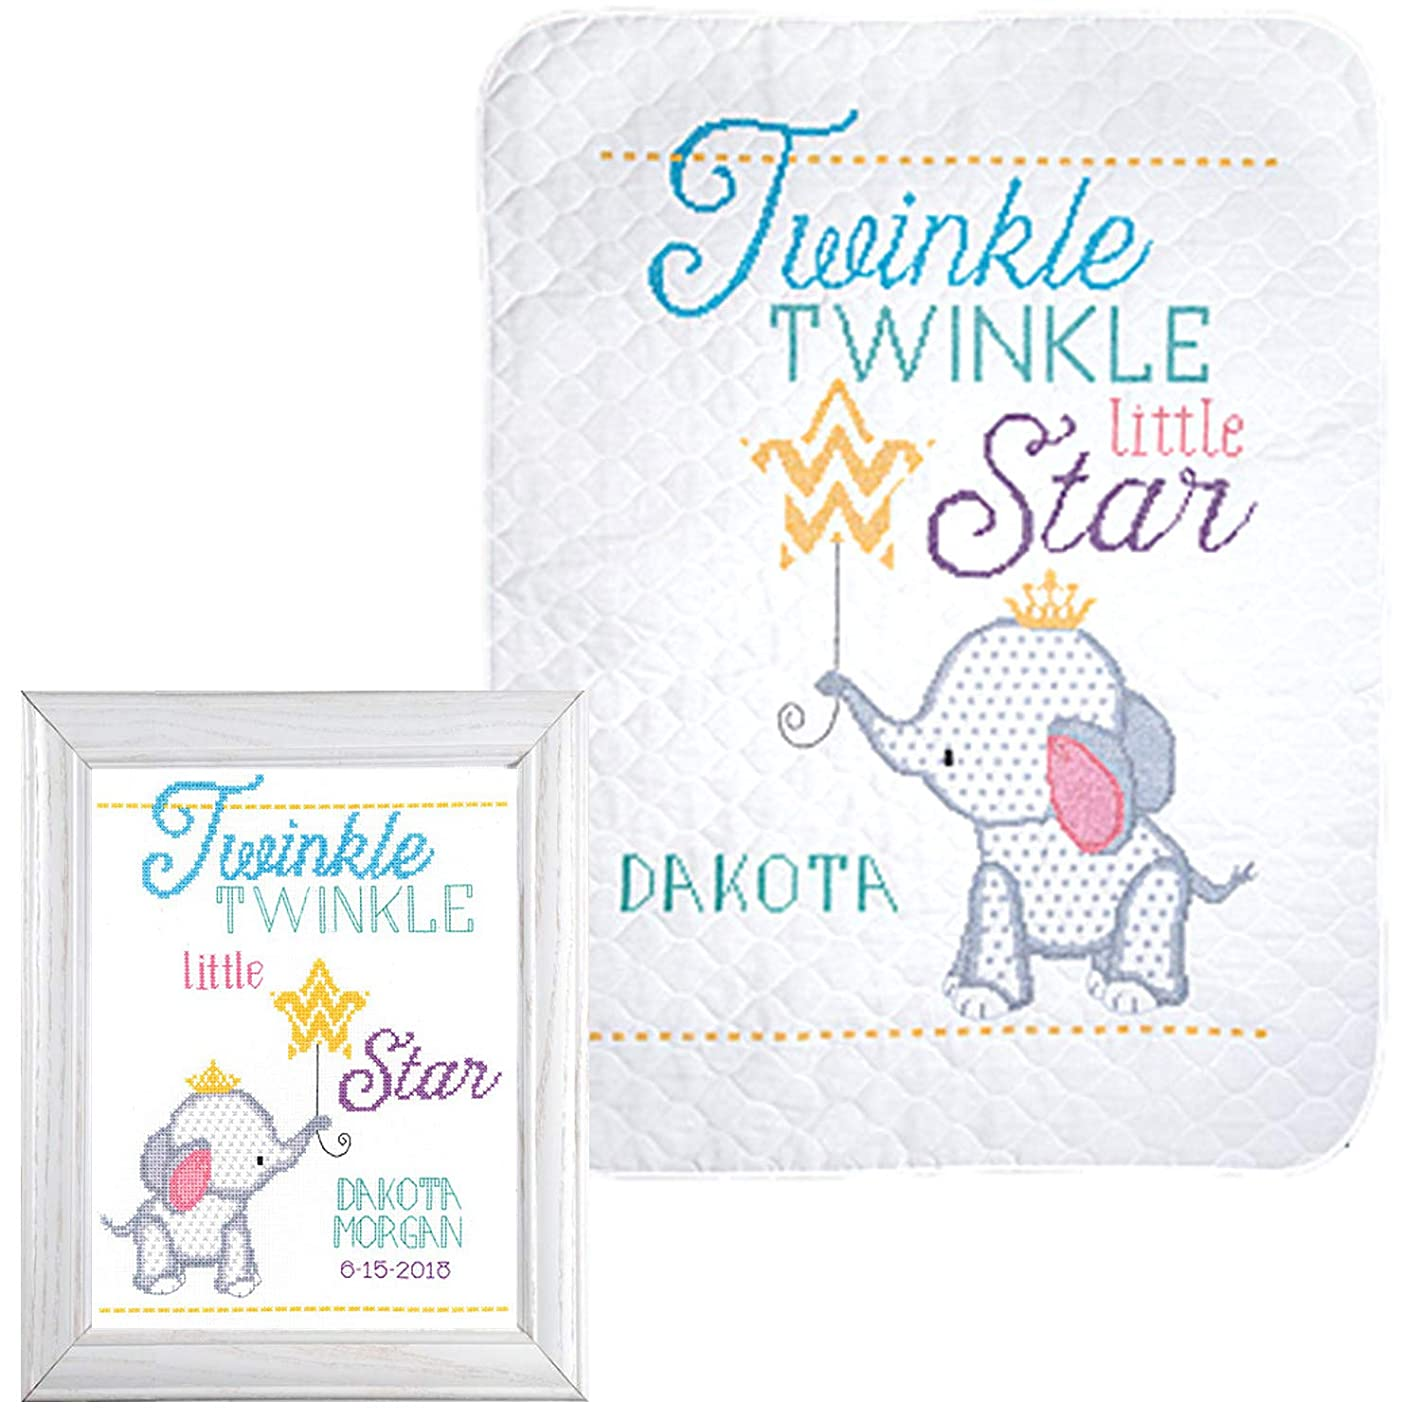 Janlynn - Nursery Décor Cross Stitch - Twinkle Twinkle Little Star - 2 Kits: Baby Quilt and Birth Announcement with 2 Gift Cards